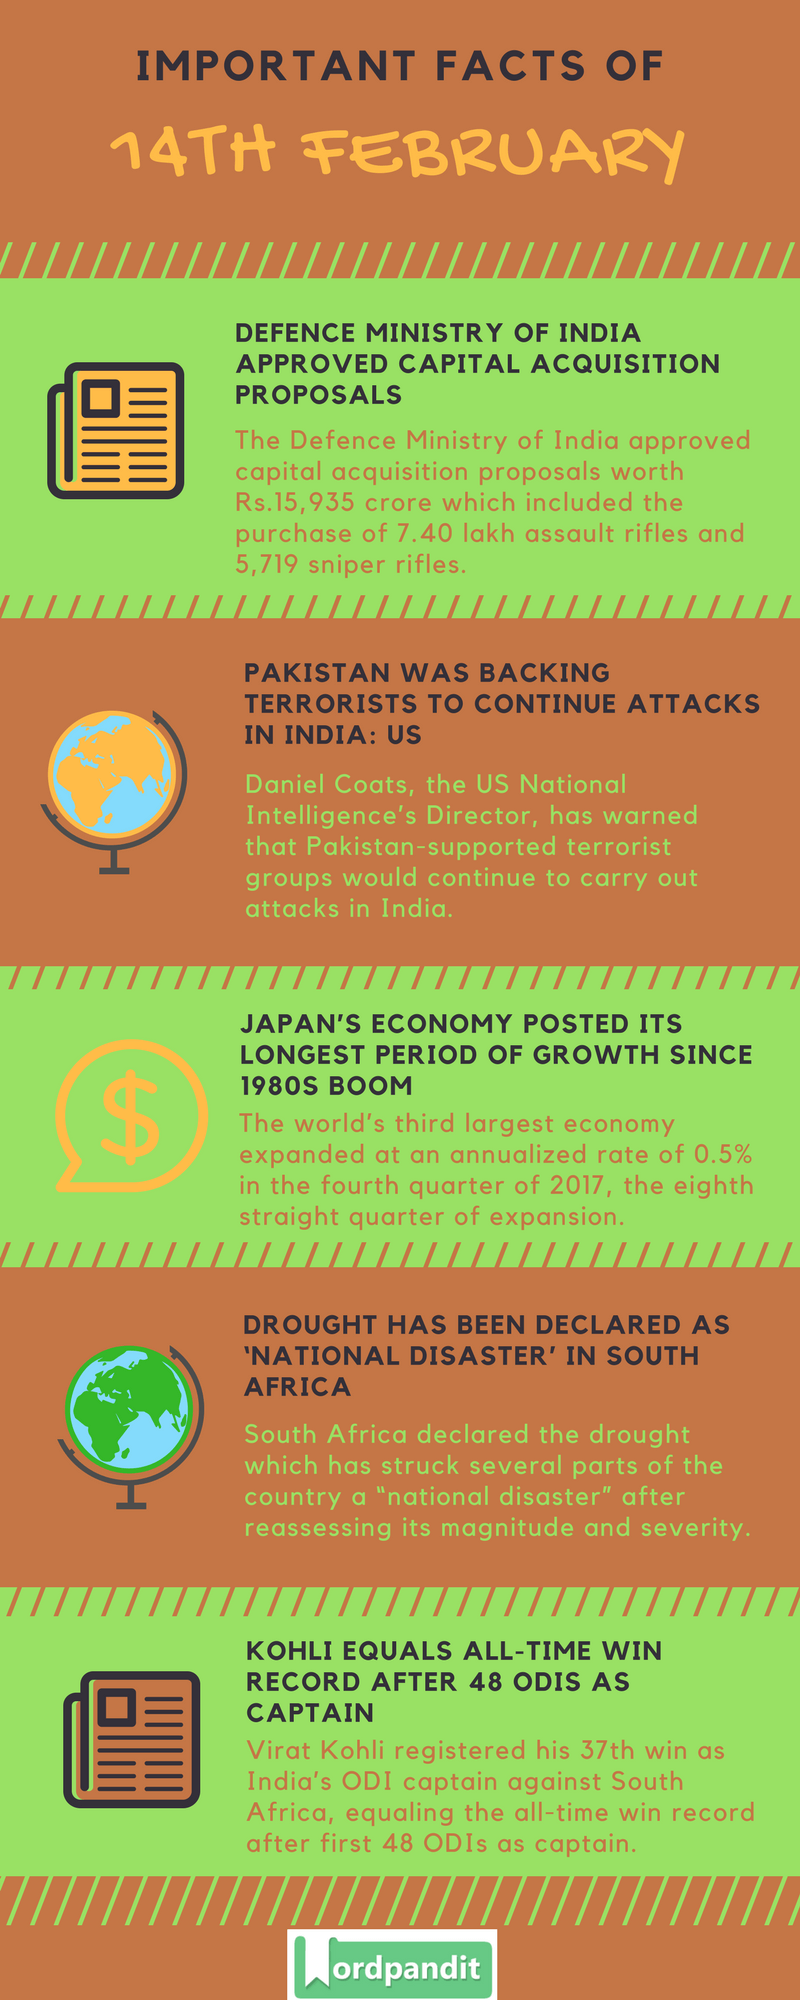 Daily Current Affairs 14 February 2018 Current Affairs Quiz February 14 2018 Current Affairs Infographic